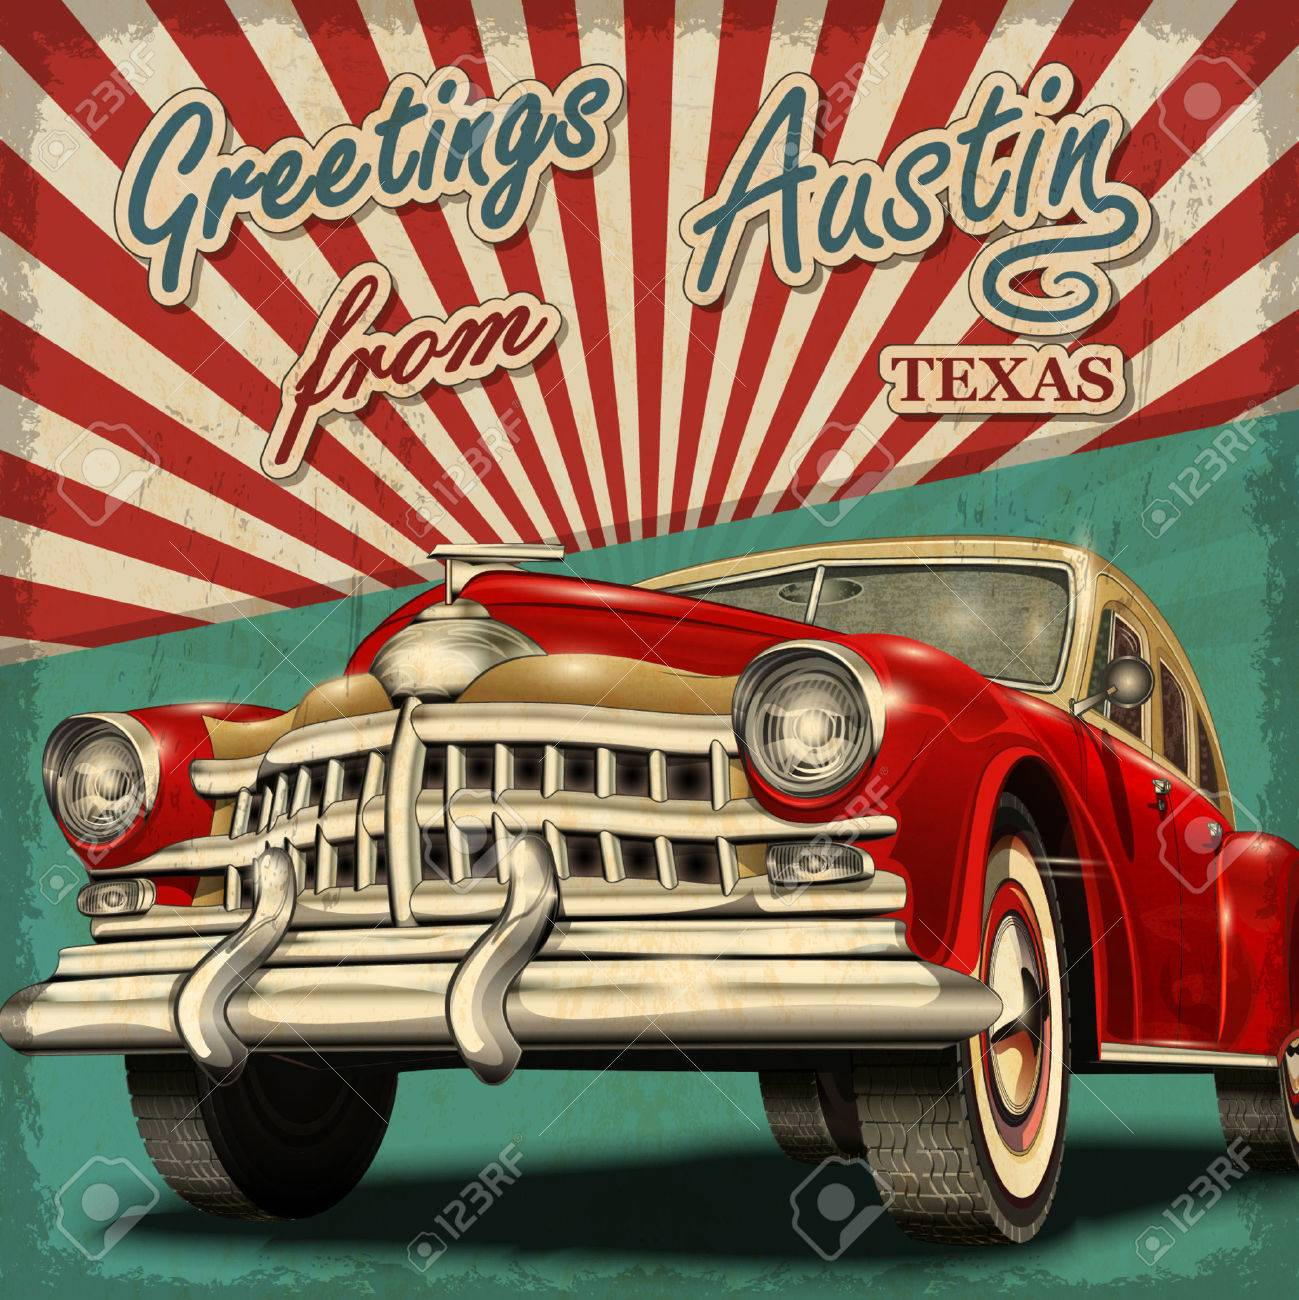 vintage touristic greeting card with retro car austin texas royalty